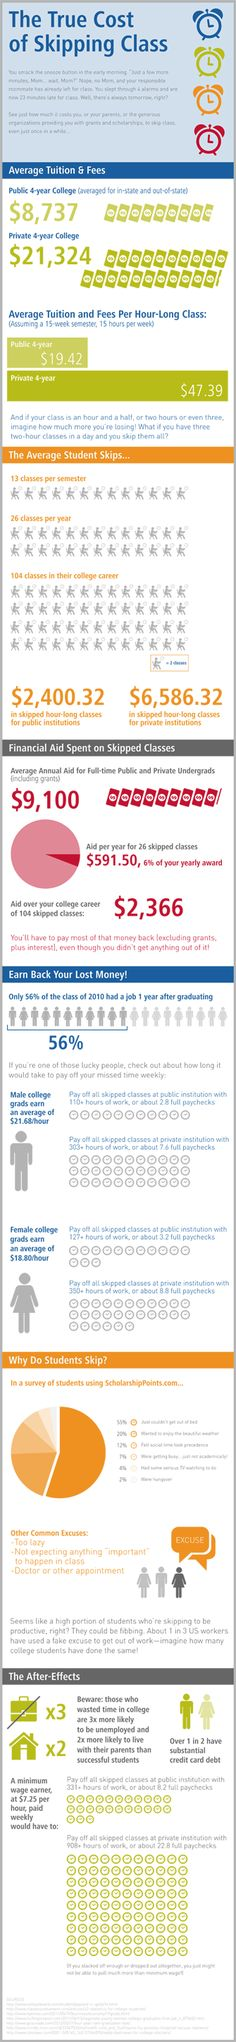 The True Cost of Skipping Class [Infographic]